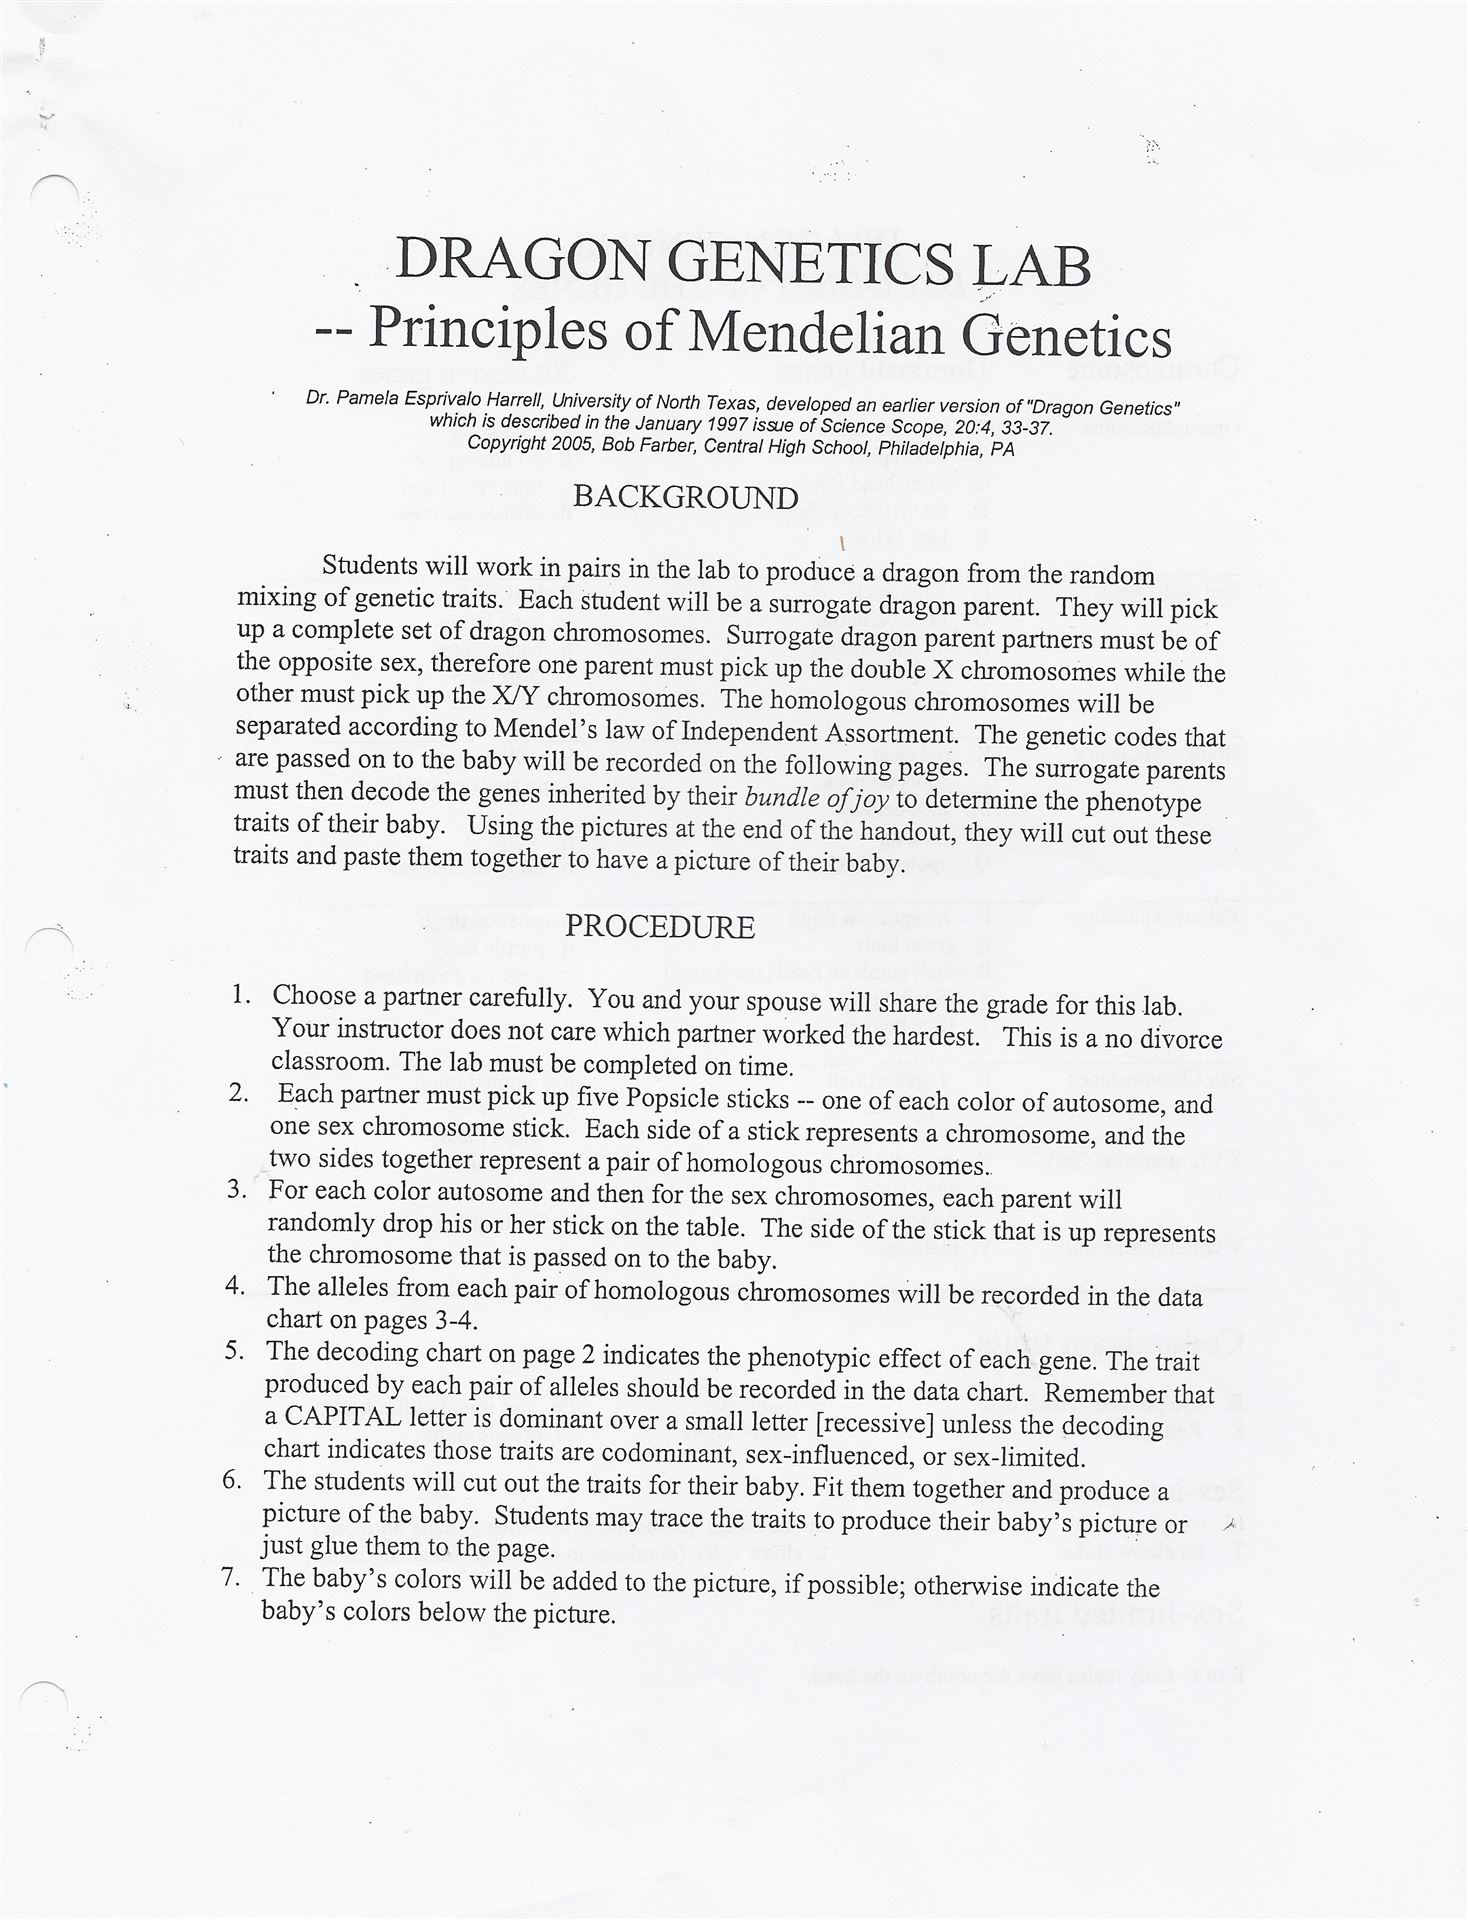 Conner Middle School – Dragon Genetics Worksheet